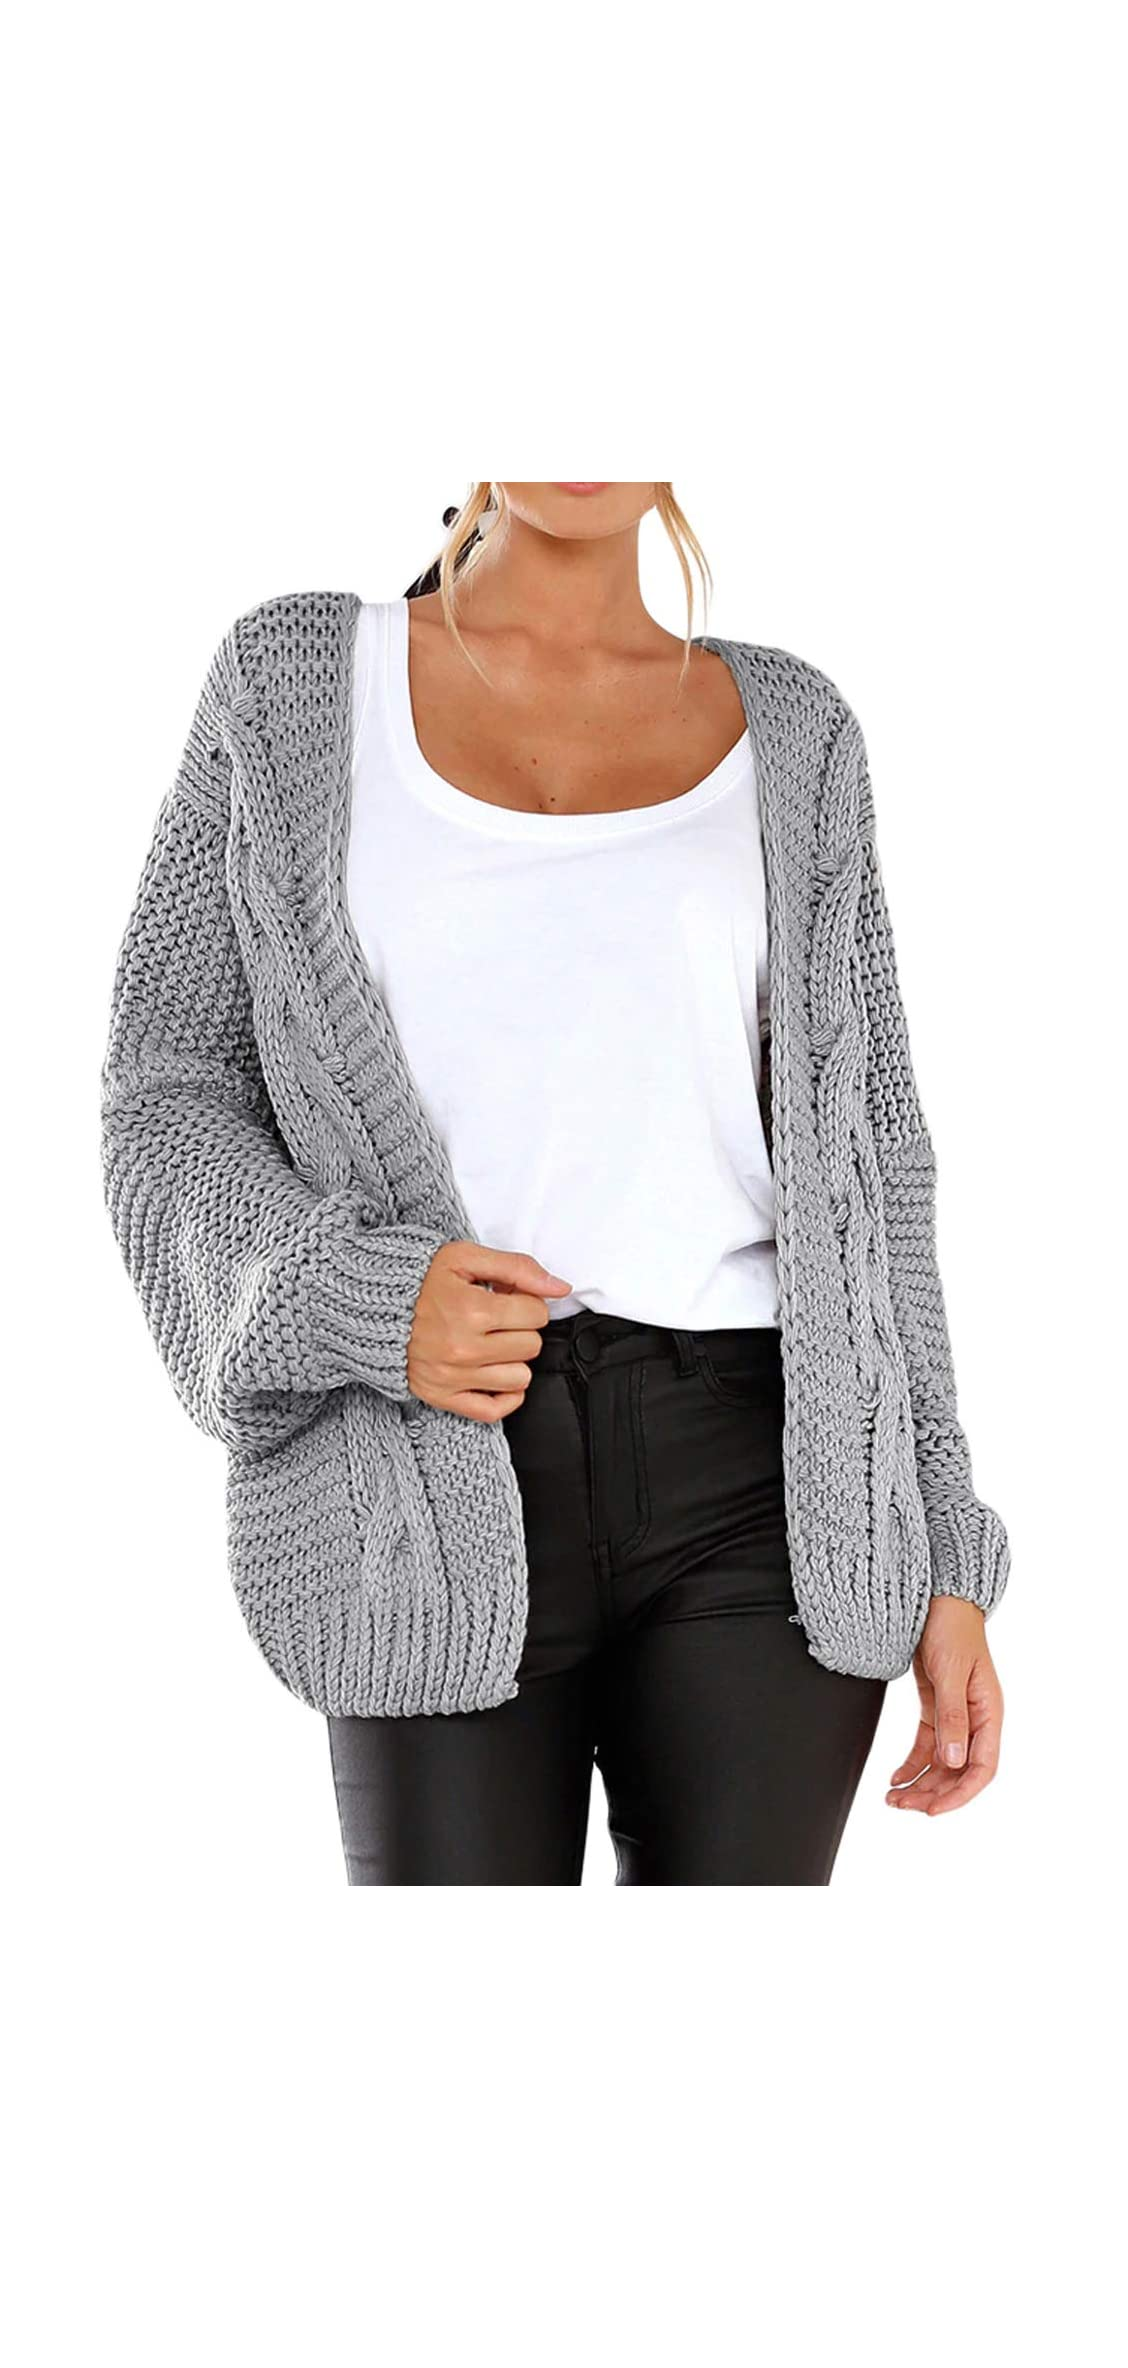 Womens Cardigans Long Sleeve Open Front Knitted Outwear